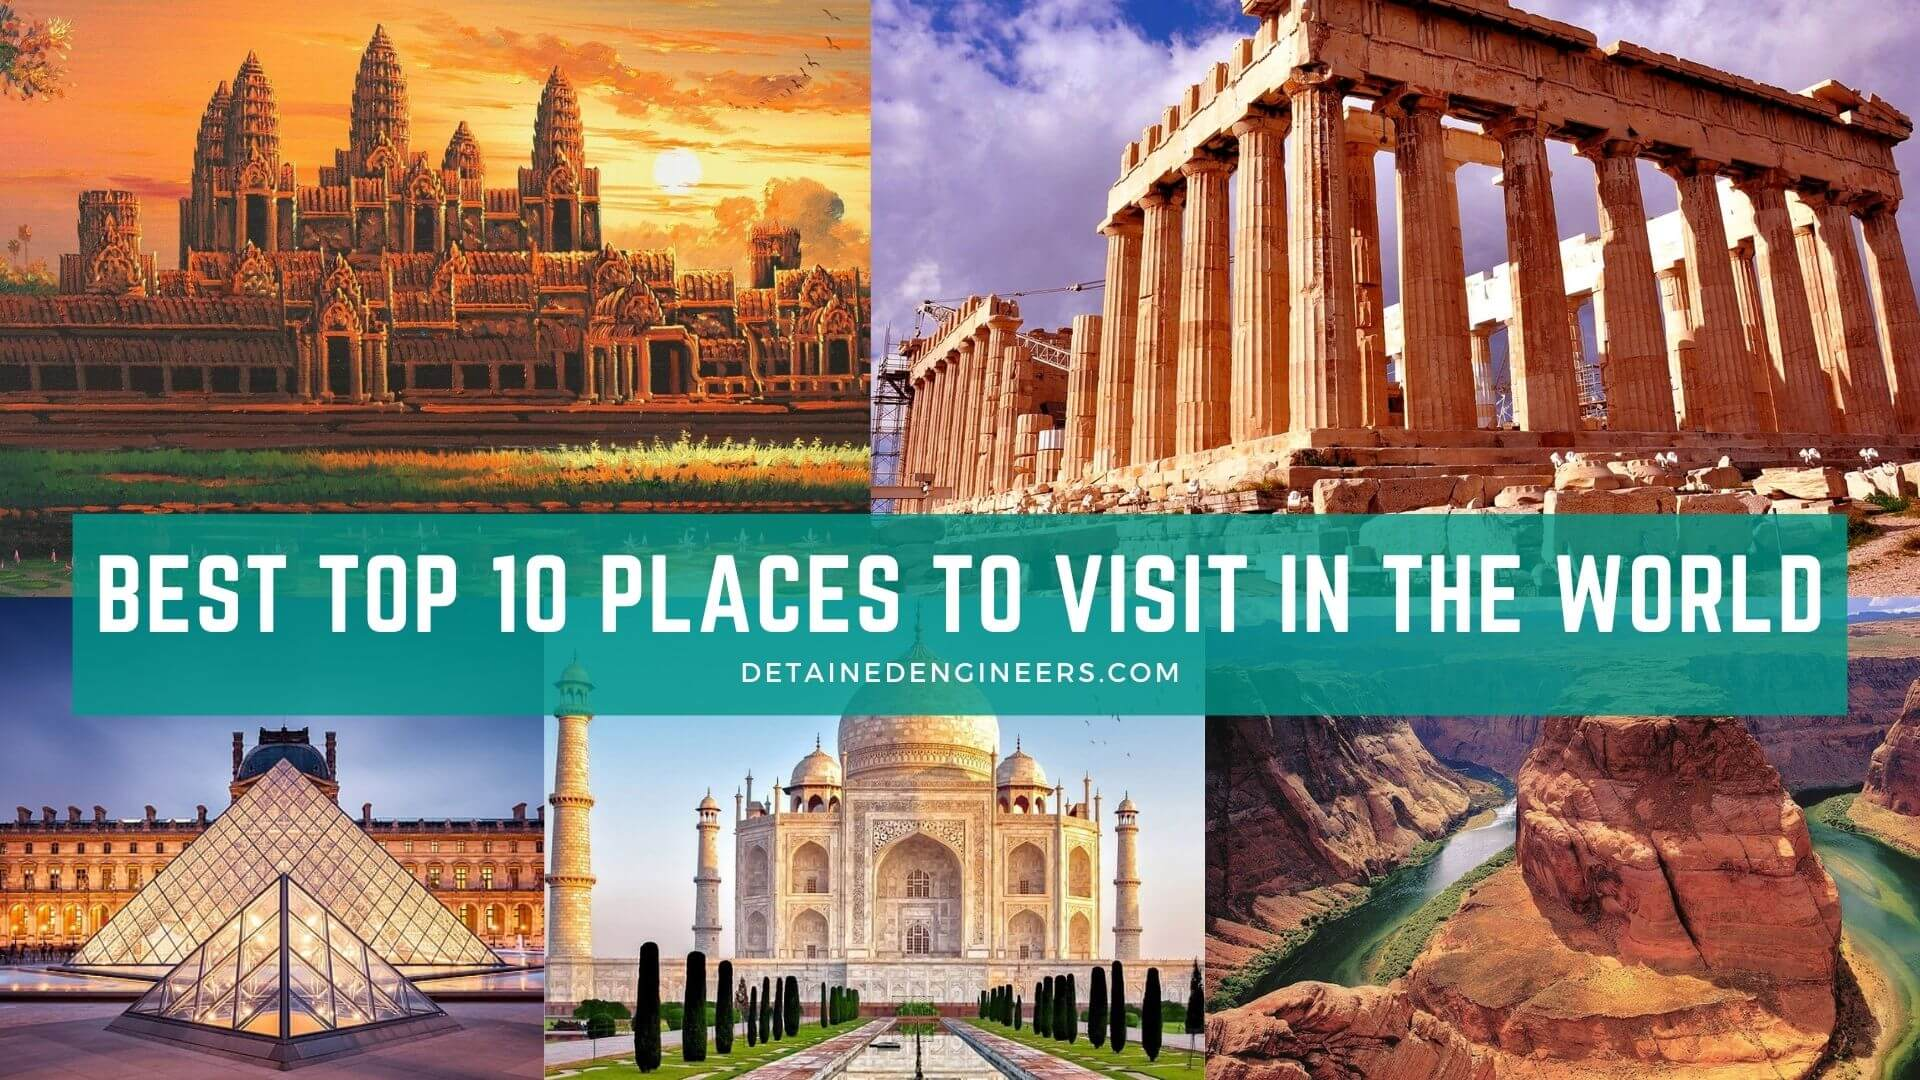 Best top 10 Places to Visit in the World